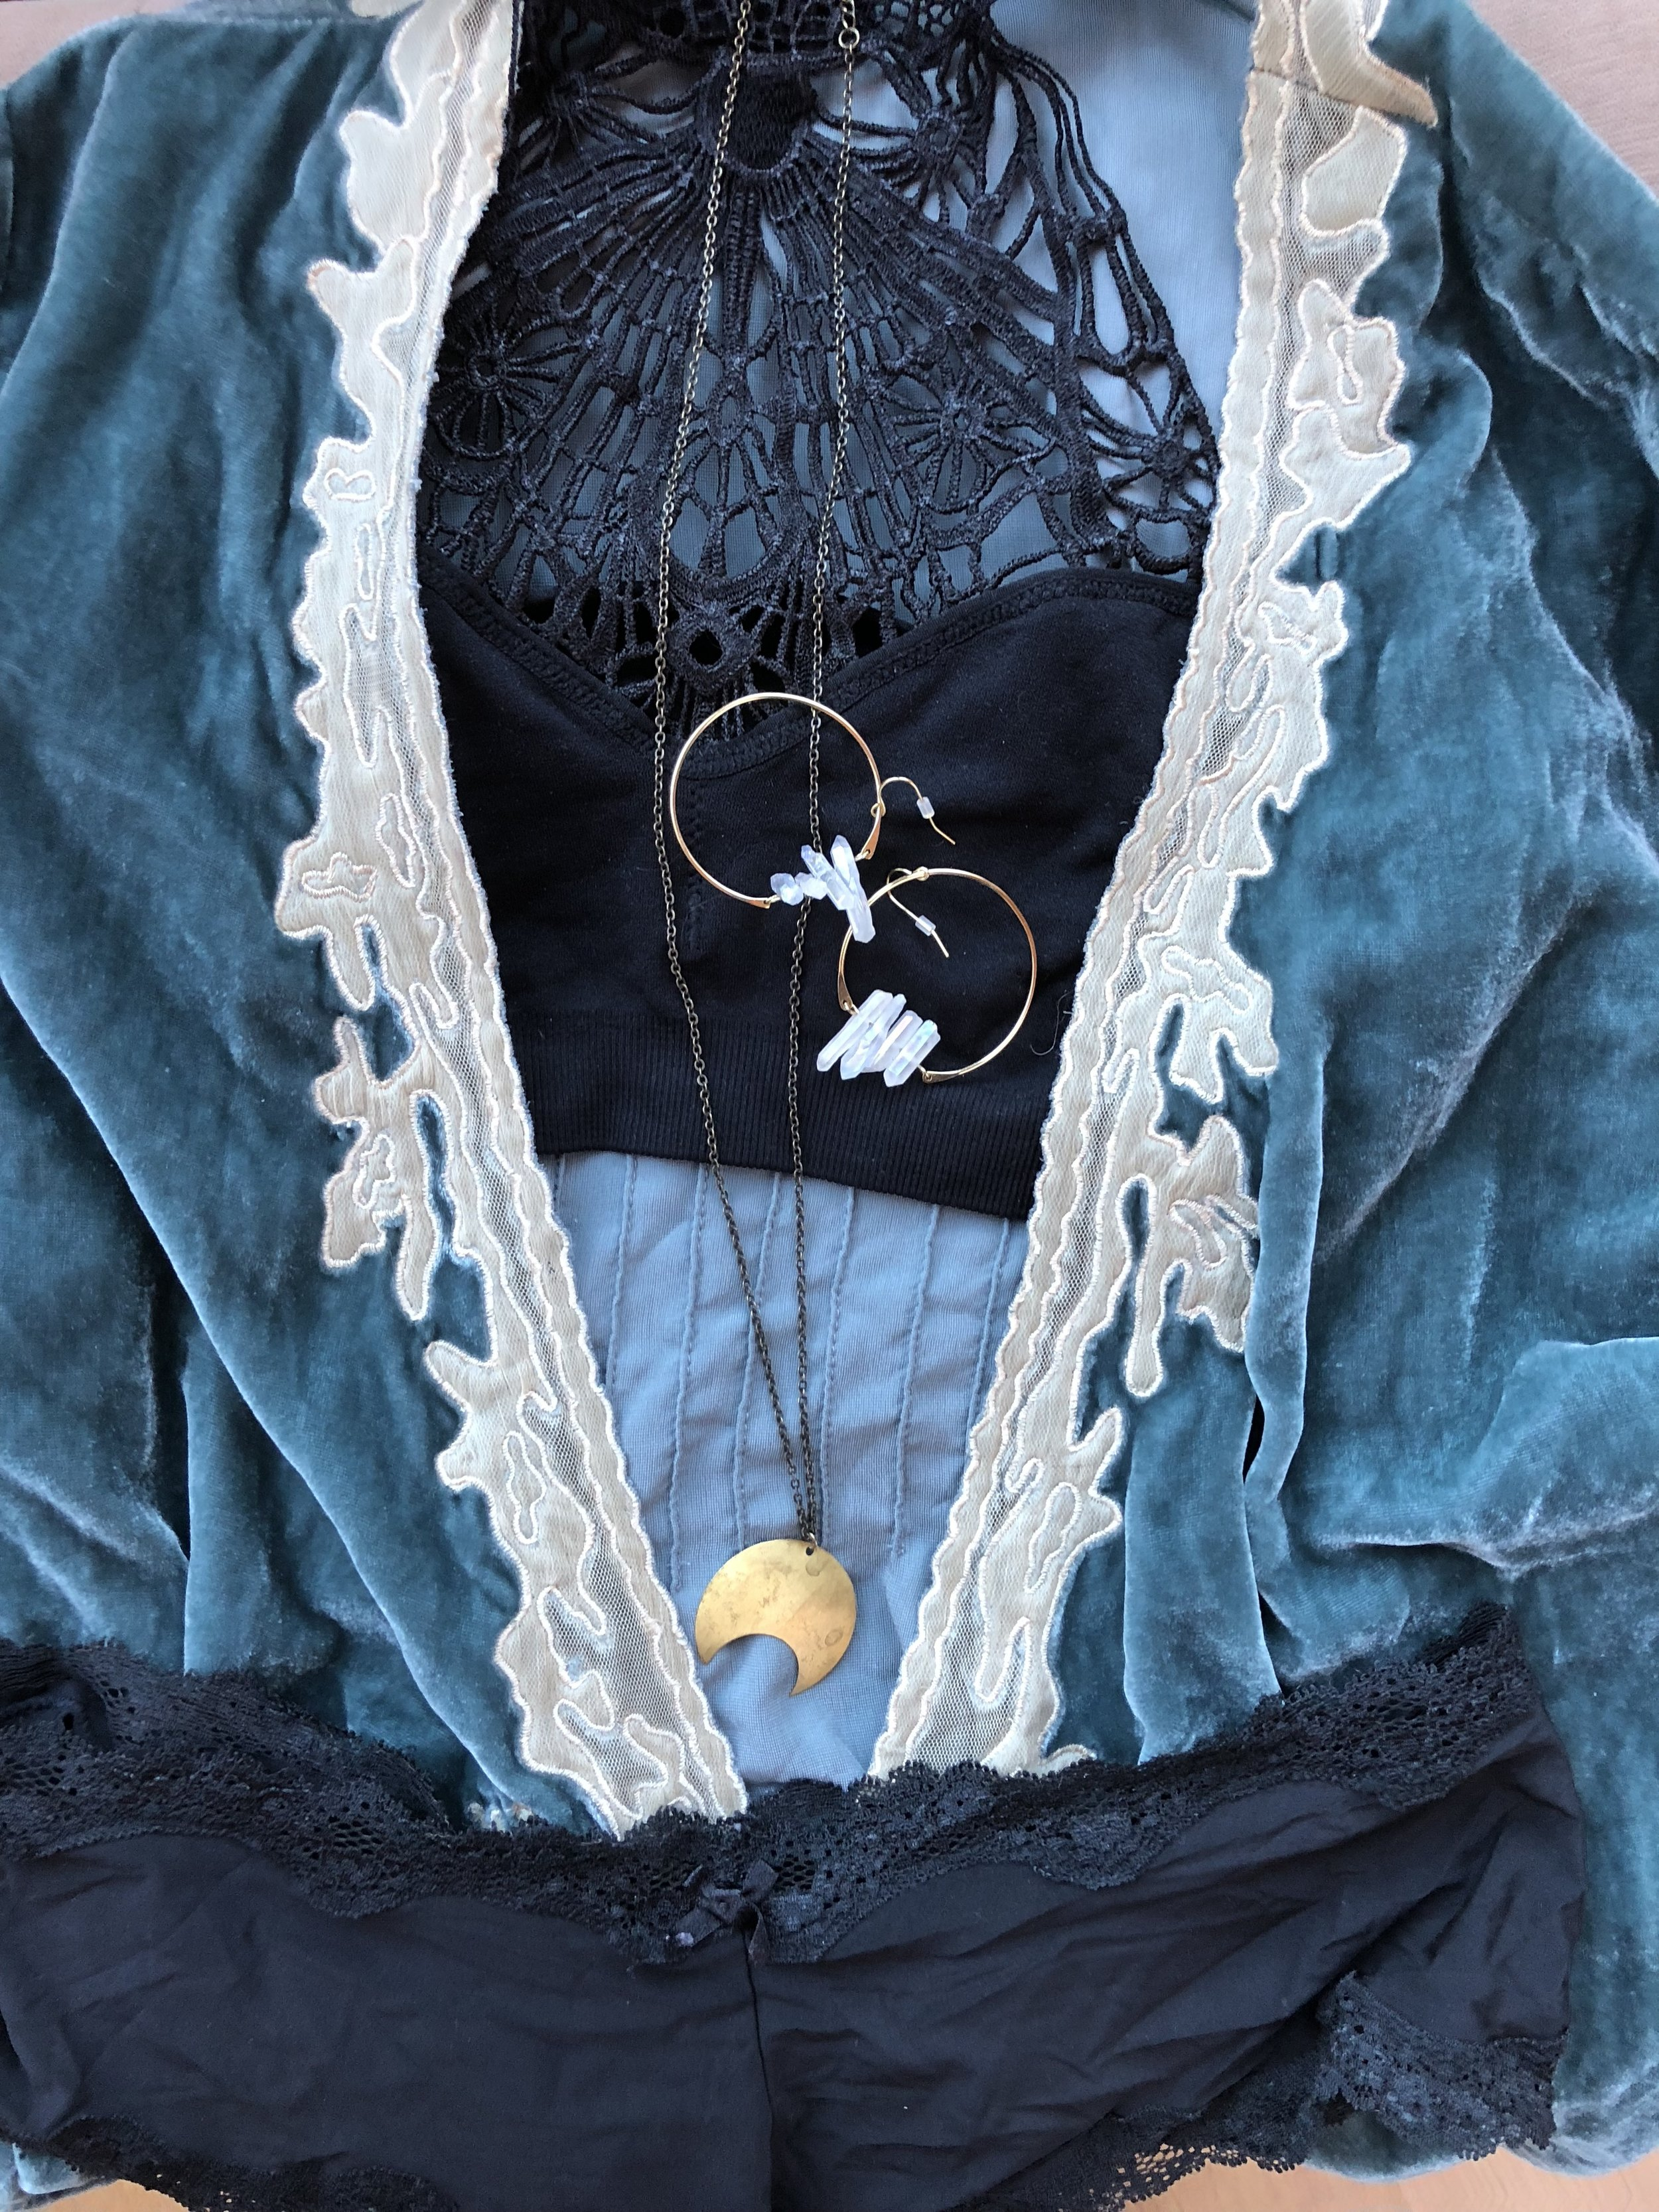 boston boudoir photos lingerie eclectic bohemian style vintage and new black lace blue velvet moon necklace crystal earrings